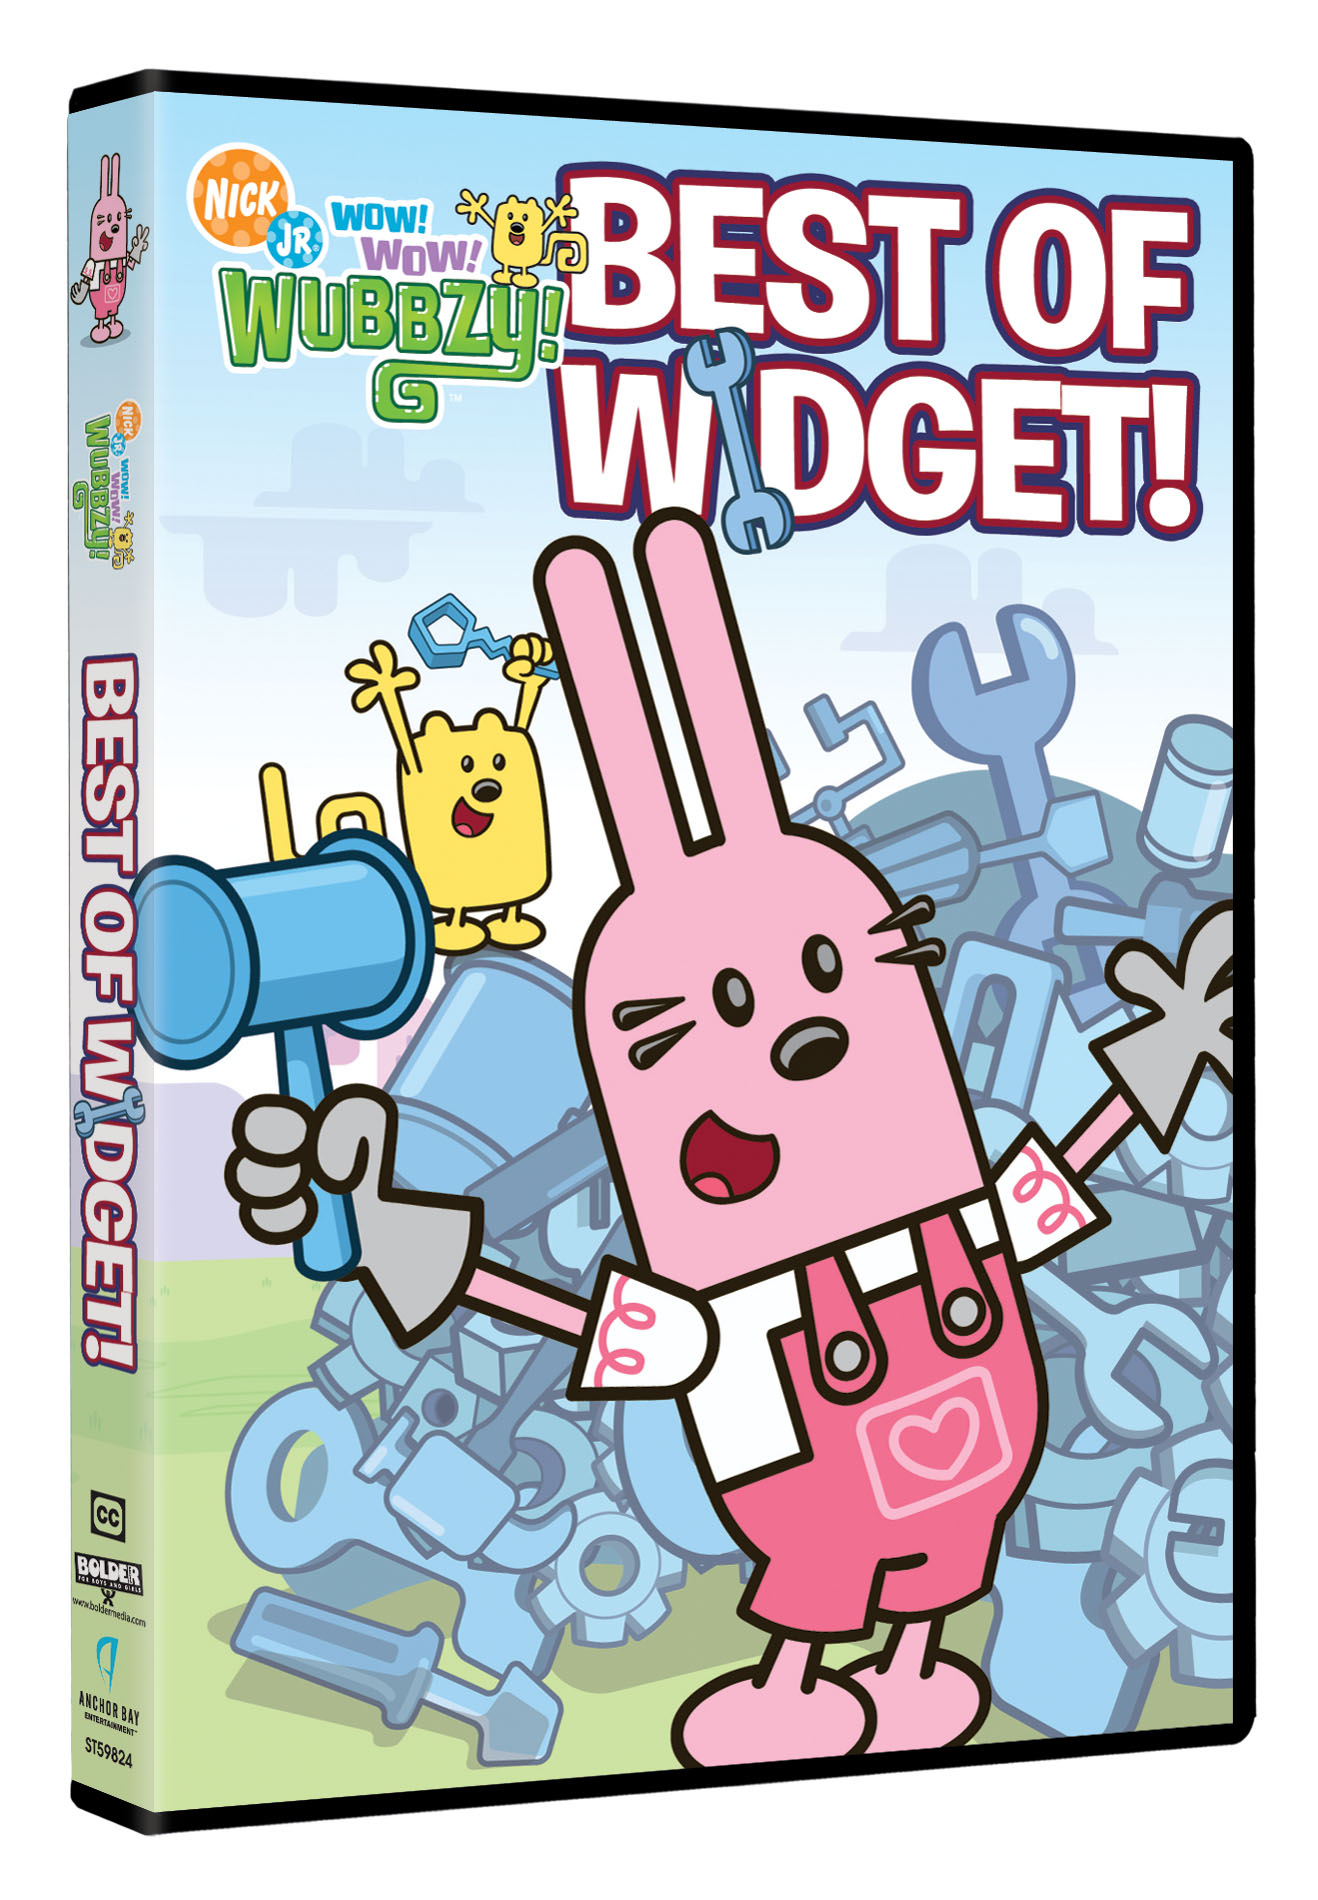 Nick jr dvd logo nick jr wow wow wubbzy best